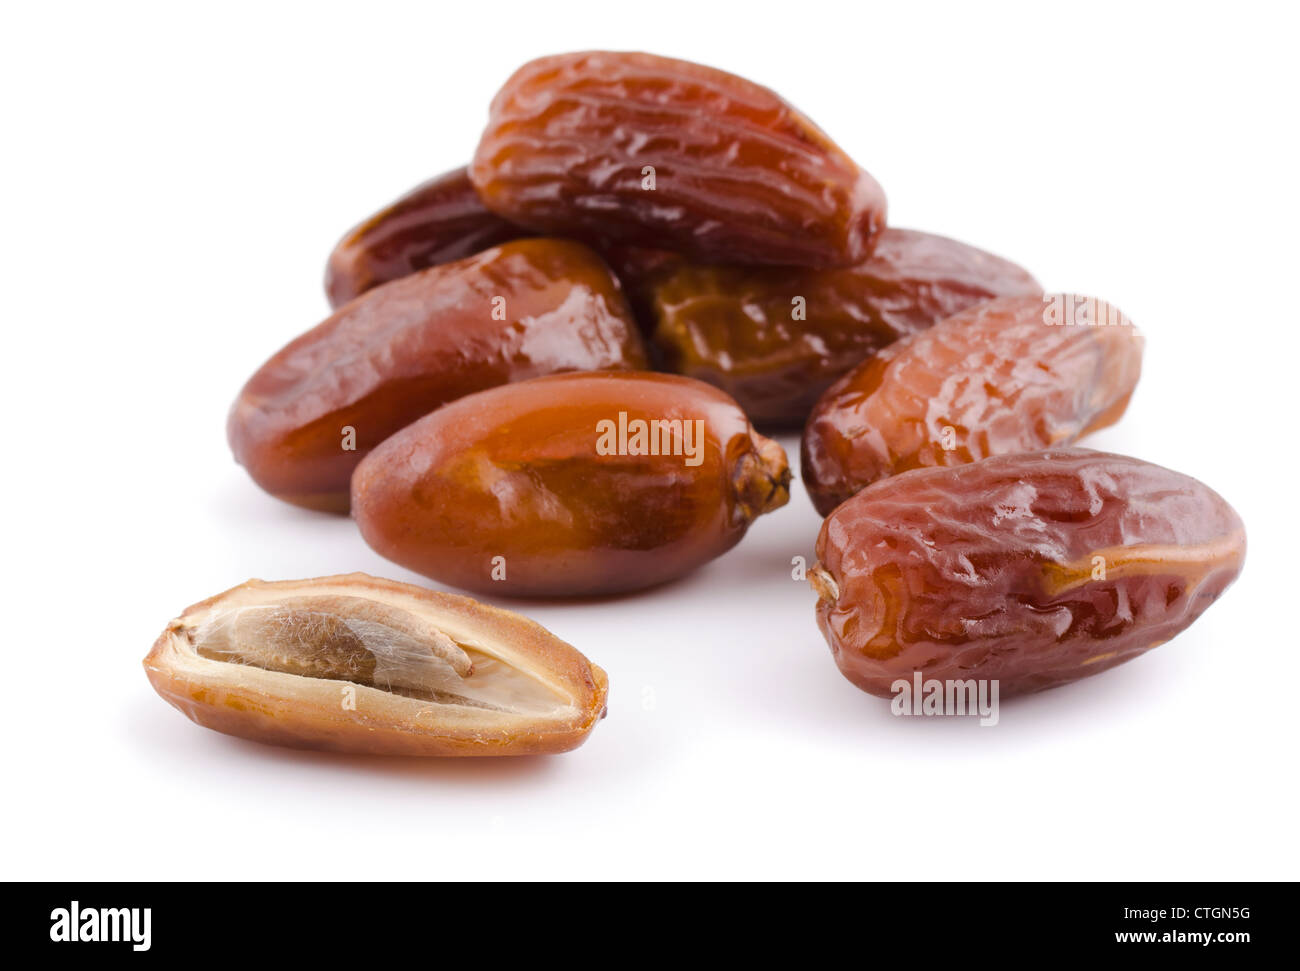 Heap of dried date fruit isolated on white - Stock Image